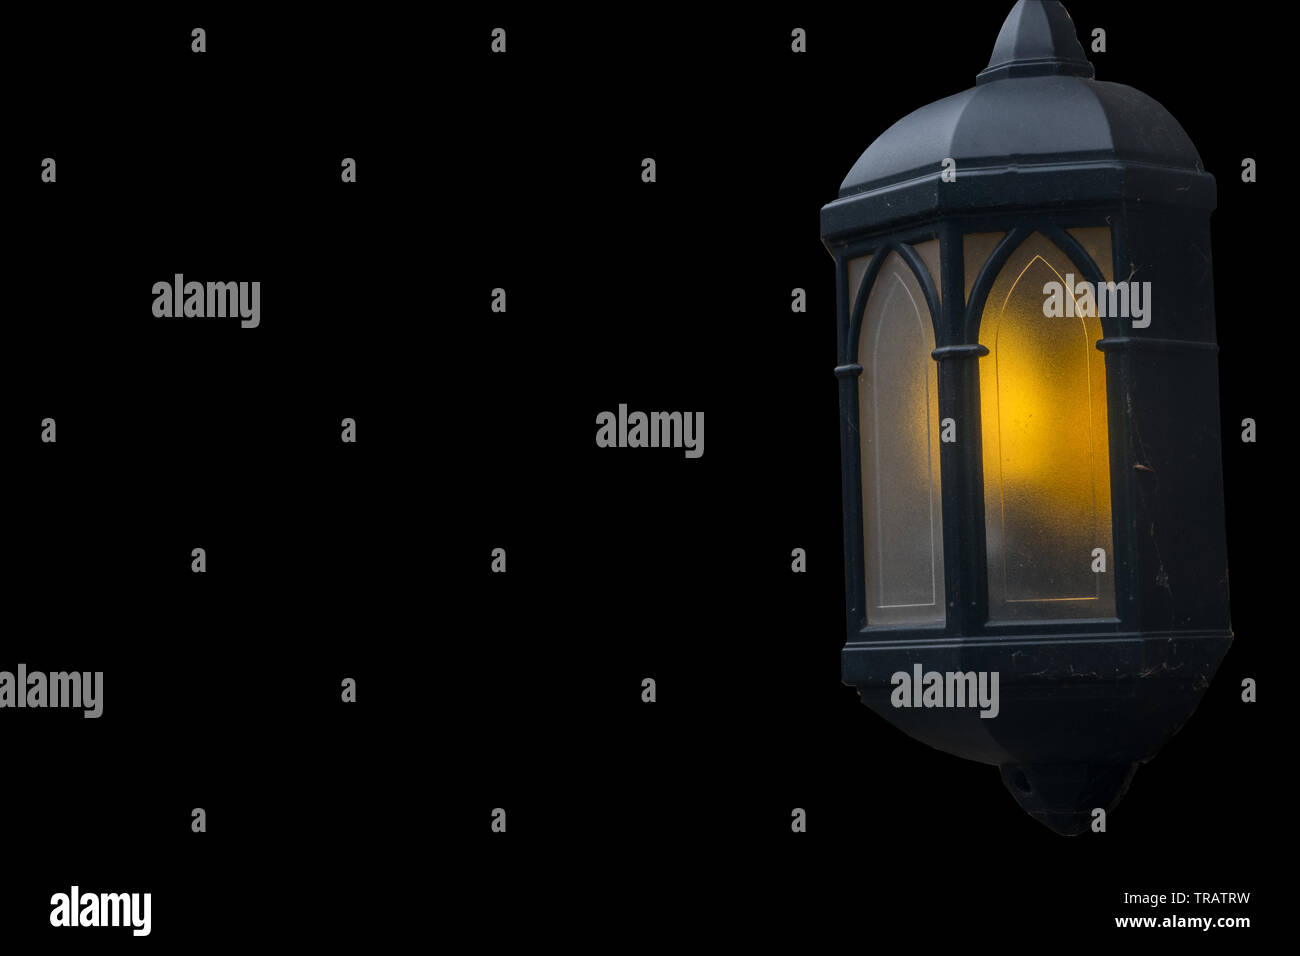 Lamps illuminate the evening attached to the house isolated over the black background. - Stock Image